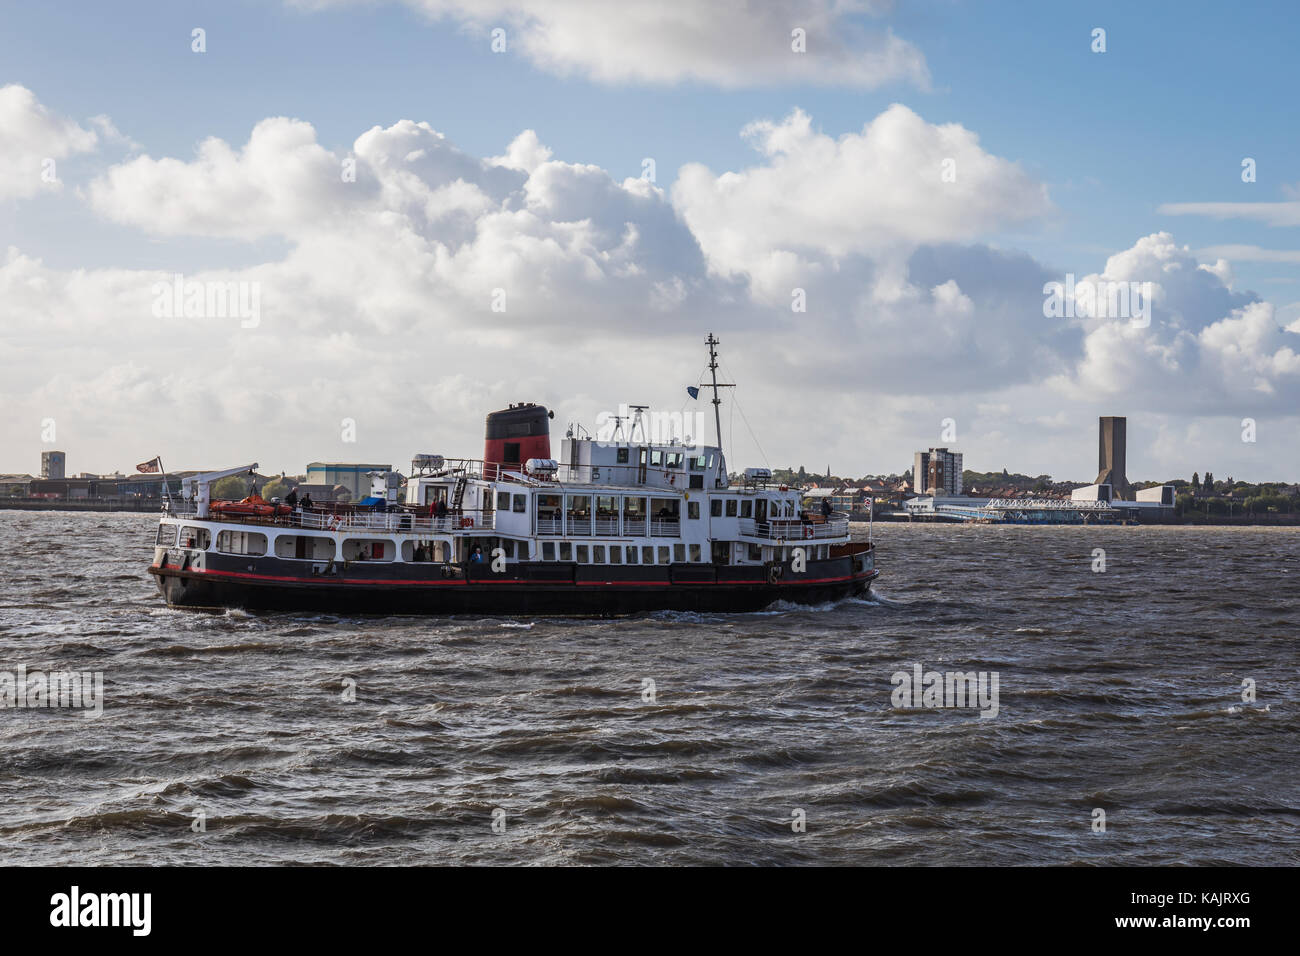 The Royal Iris ferry on the Mersey river, seen from Pier Head, Liverpool, UK. - Stock Image